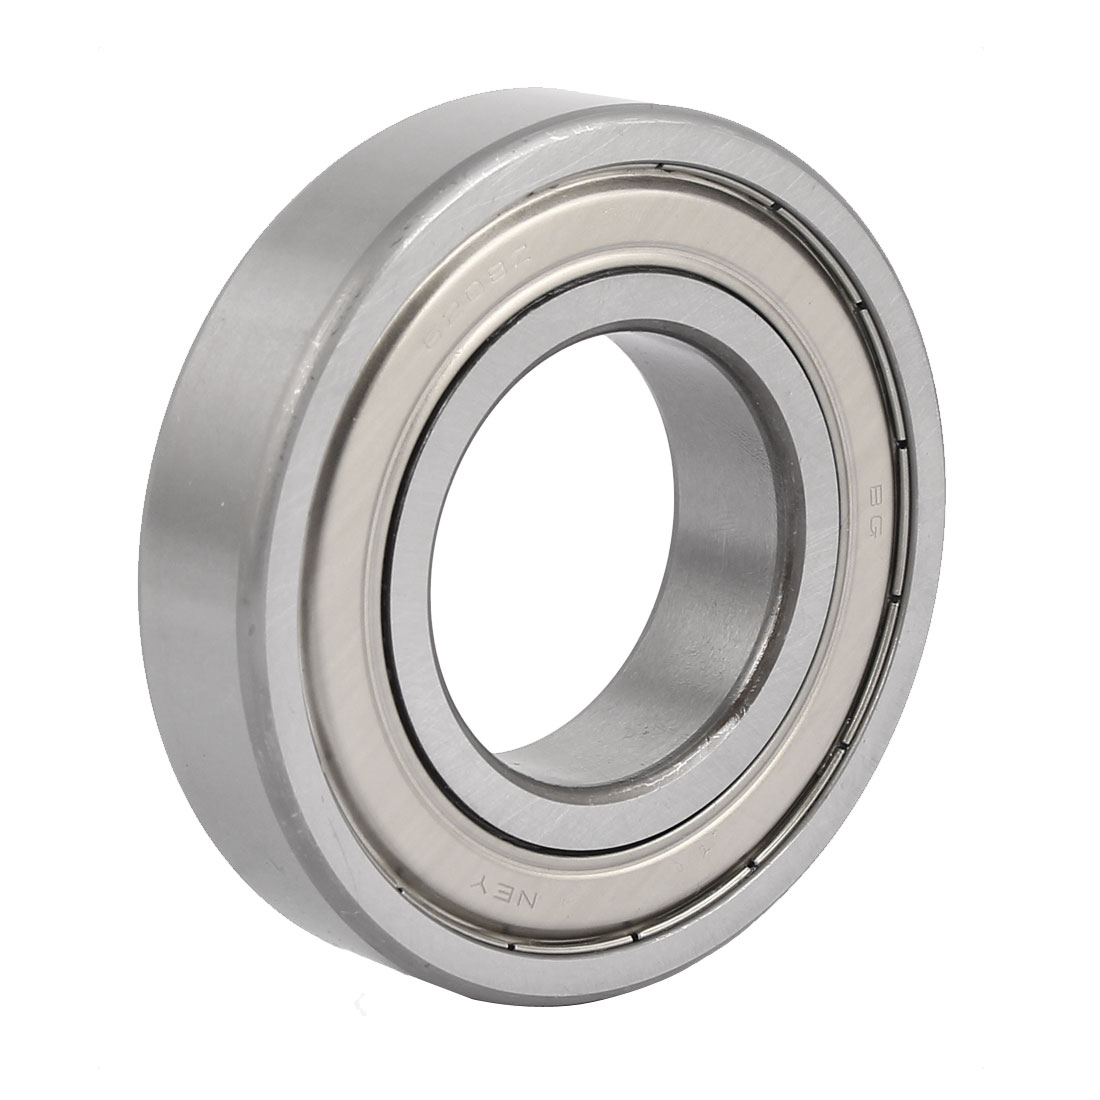 ZZ6208 80mm x 39.5mm Pressed Steel Cage Double Sealed Deep Groove Ball Bearing